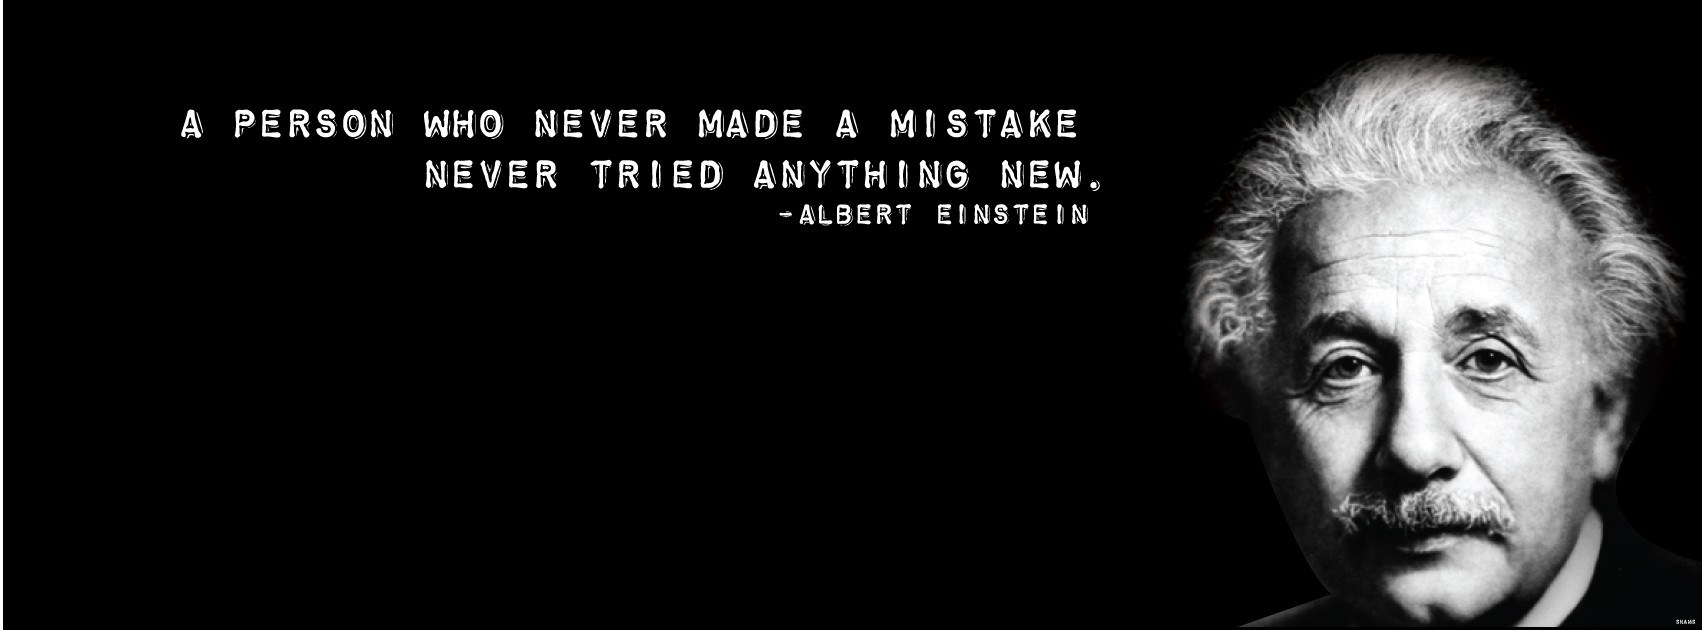 Einstein wise Quotes